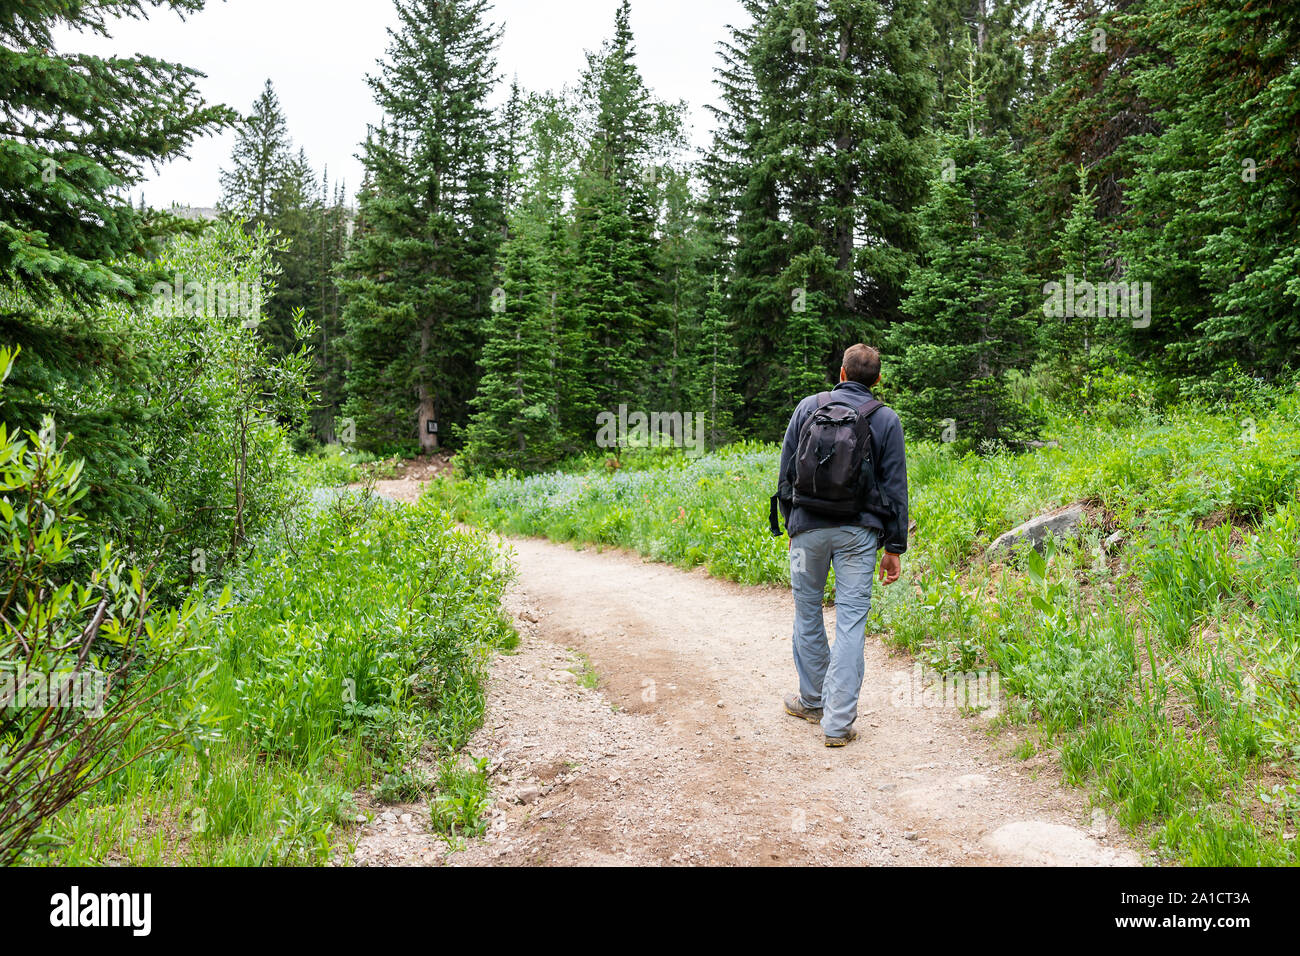 Albion Basin, Utah summer trail in 2019 season in Wasatch mountains with man walking with backpack on dirt road Stock Photo